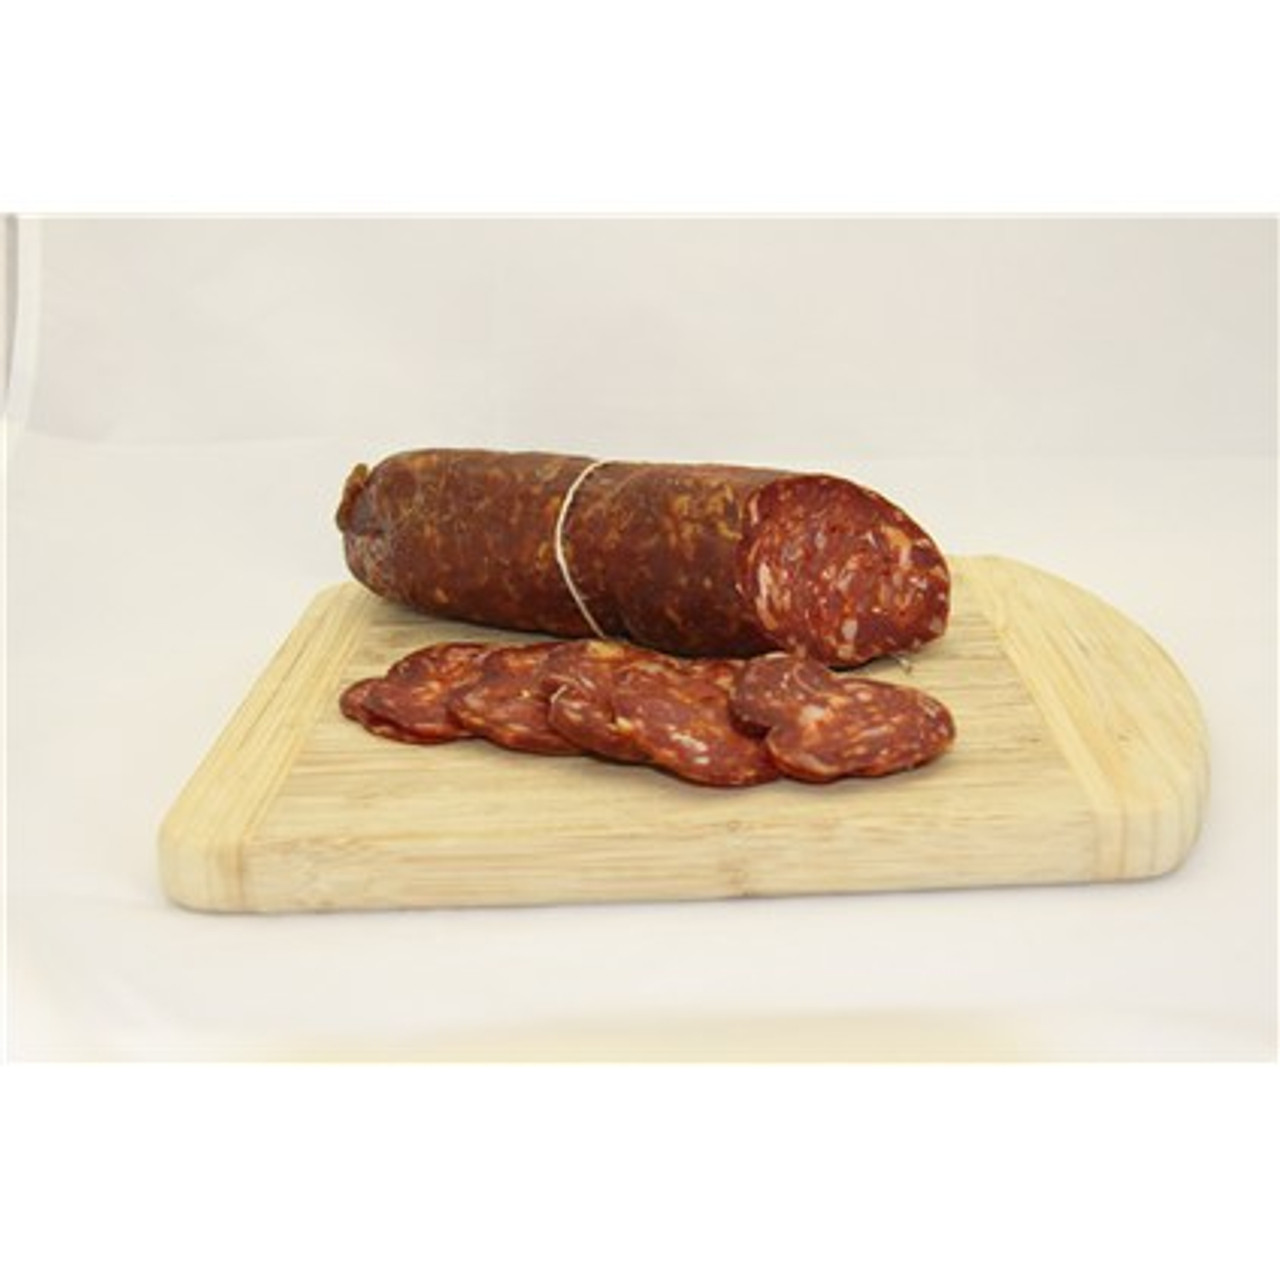 Iavarone Bros Dried Sausage